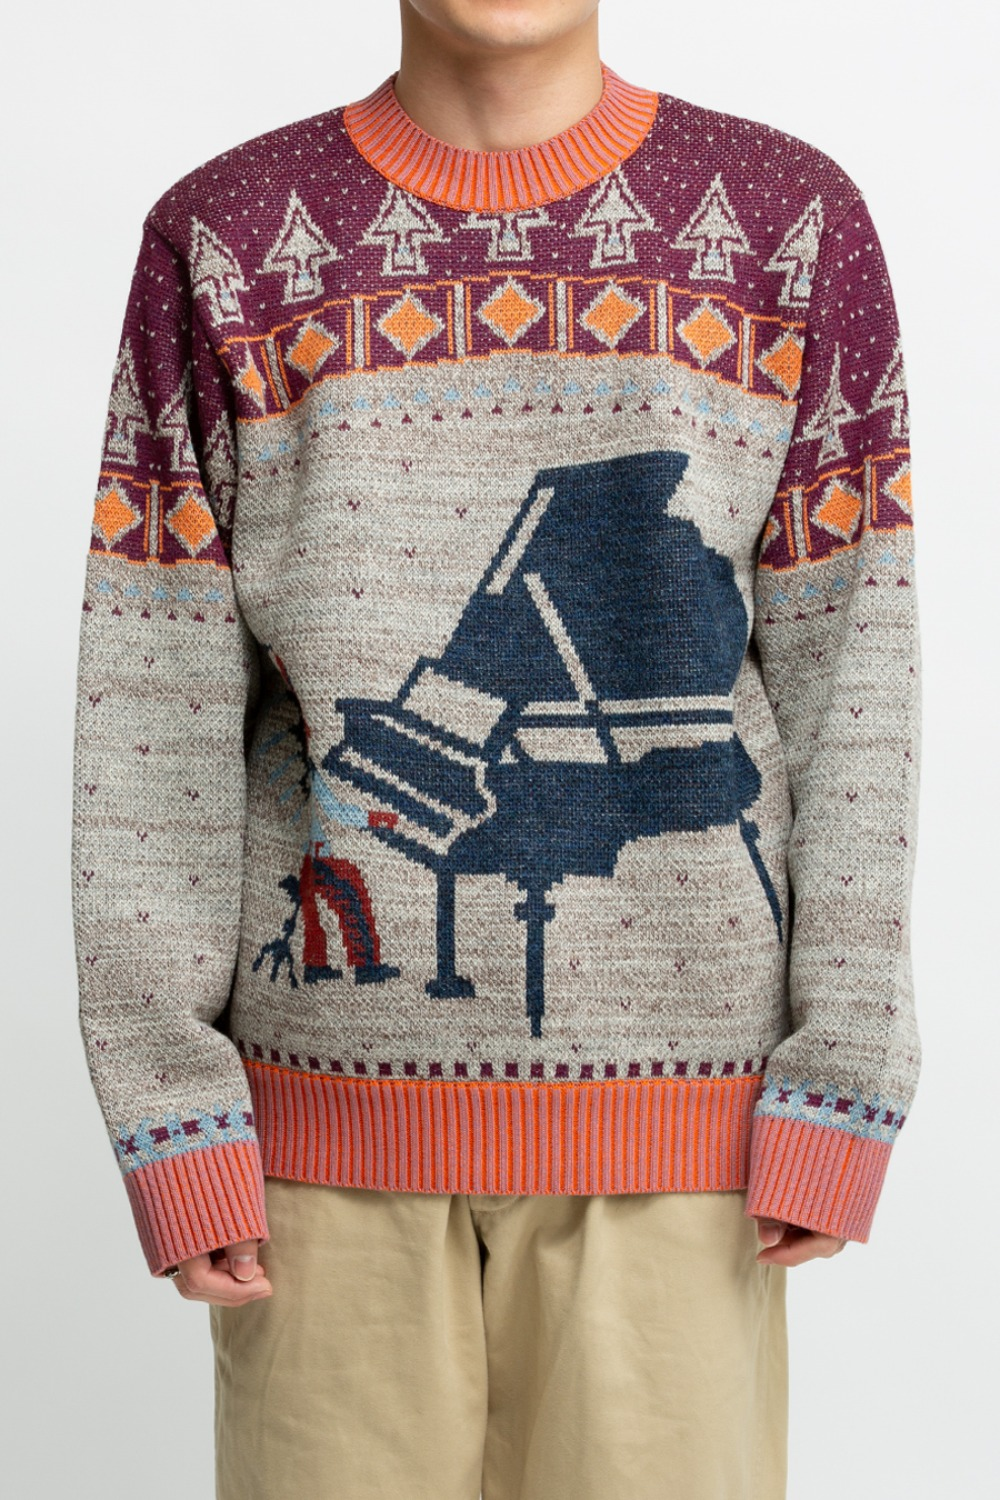 7G KNIT ALASKA CAMP PIANO CREW SWEATER